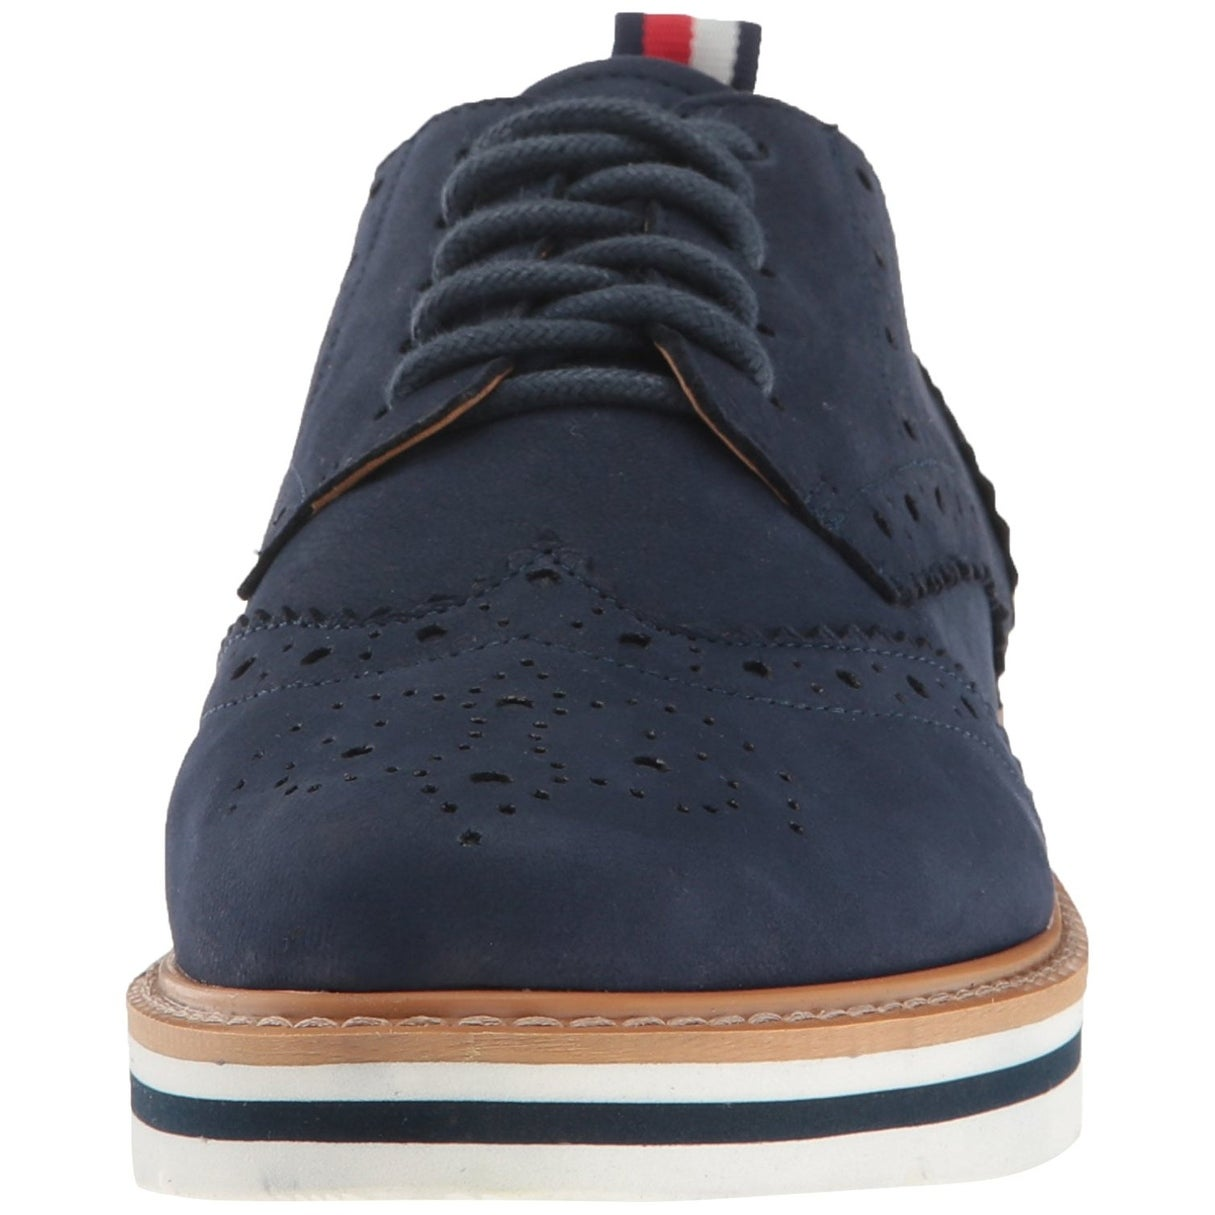 78ab212a5 Shop Tommy Hilfiger Womens Kabriele Leather Closed Toe Oxfords - Free  Shipping Today - Overstock - 19774206